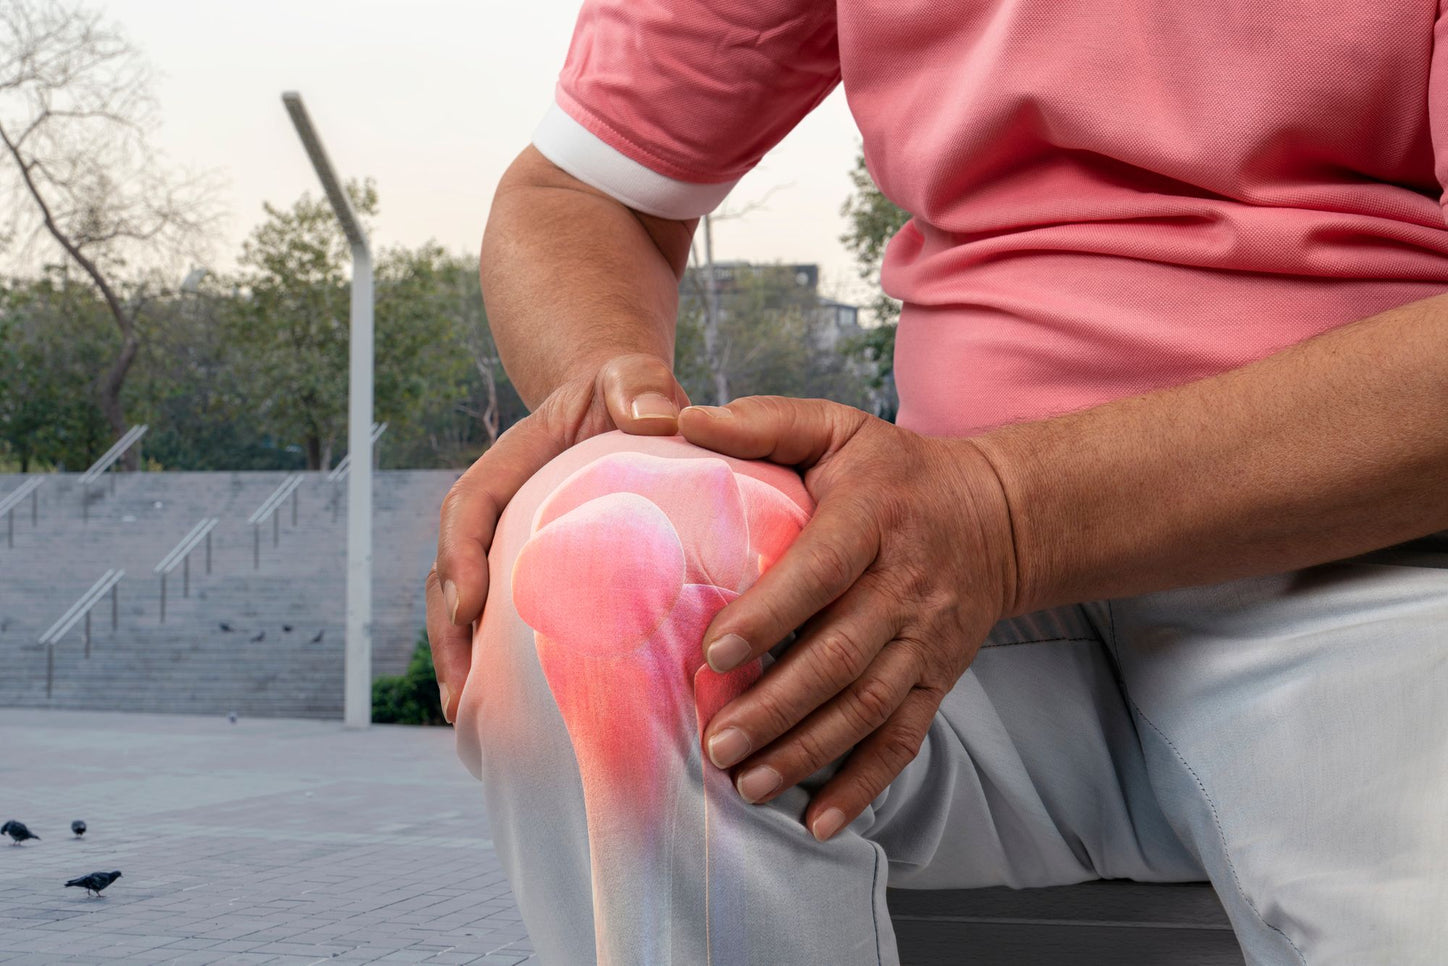 If Your Knee Hurts at Night, See Your Doctor, Experts Say | Best Life